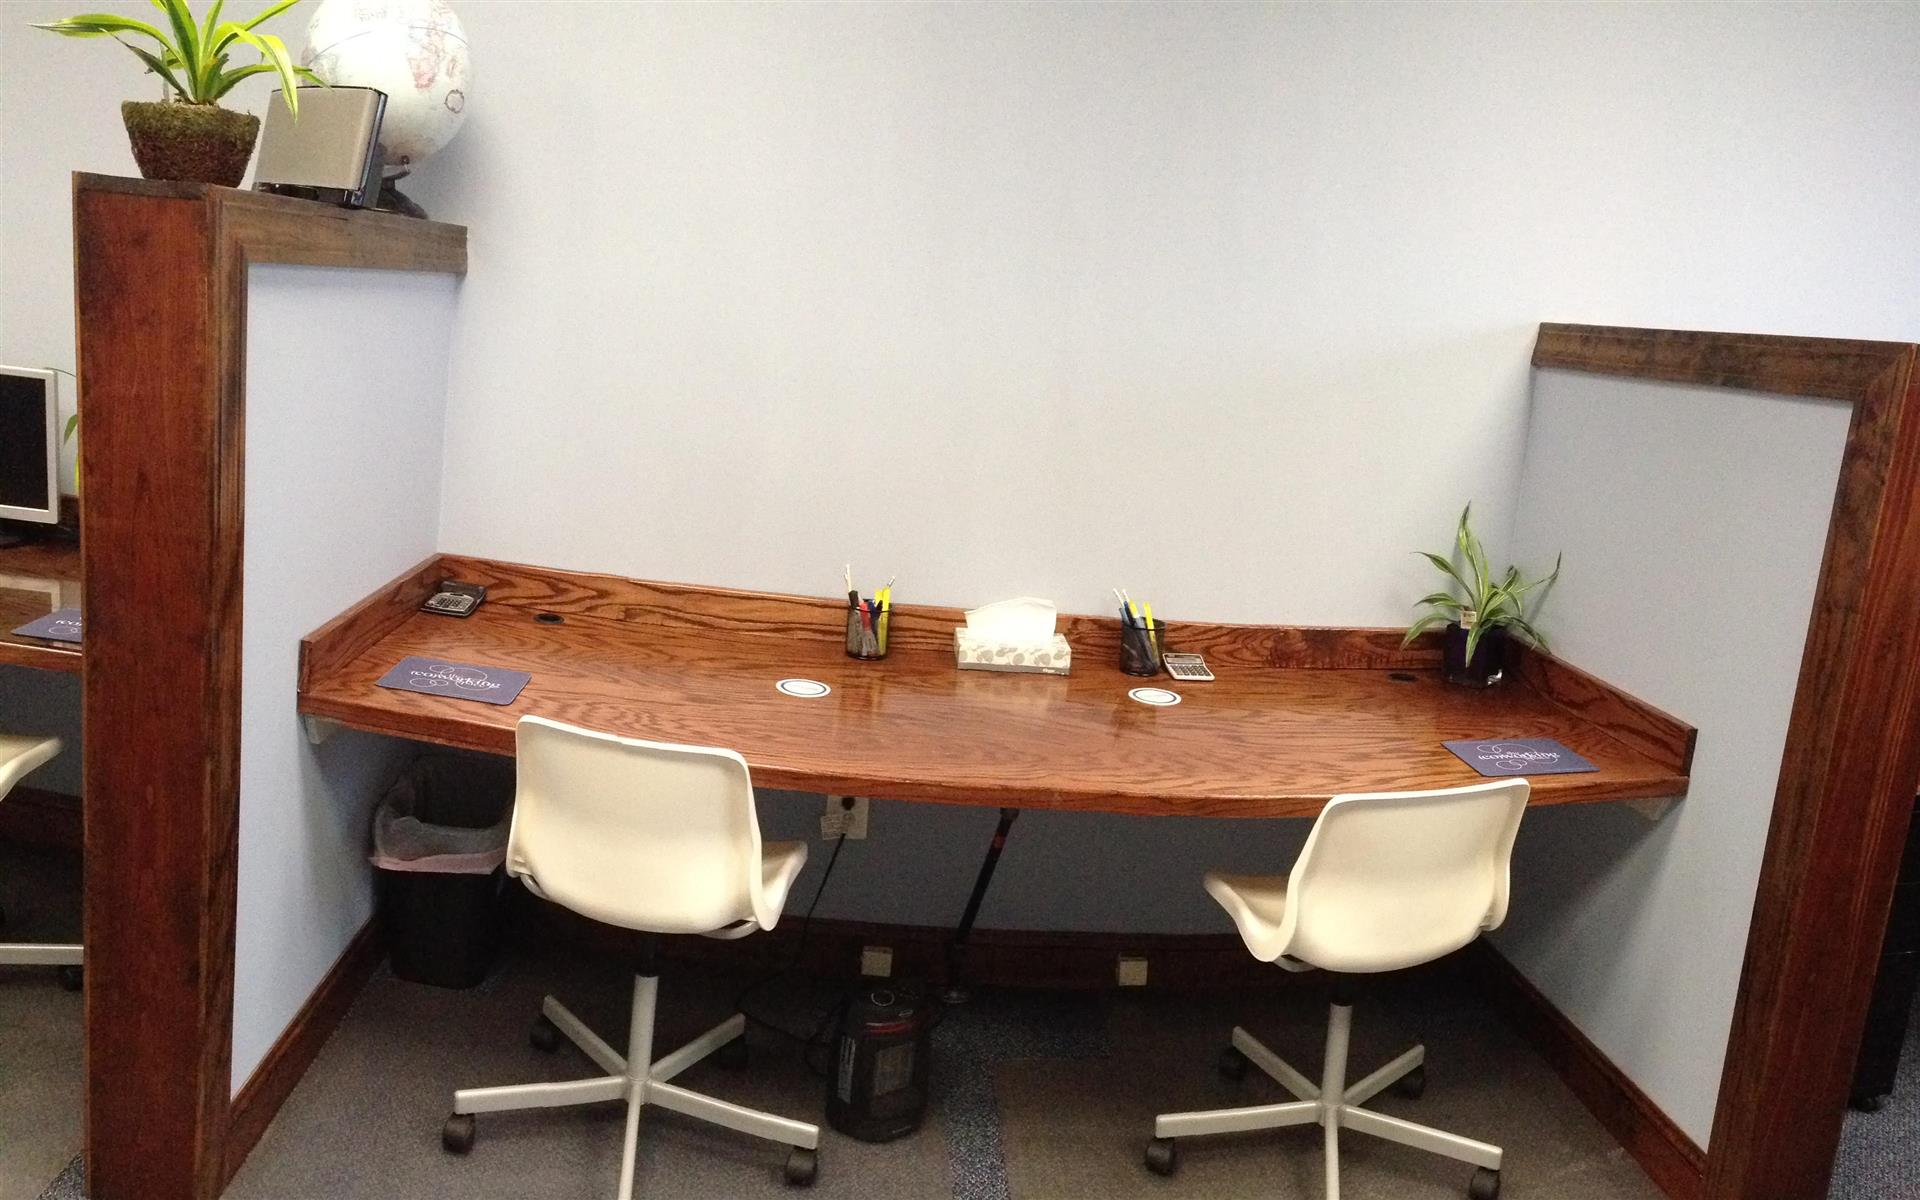 The CoWorking Space - CoWorking Hotspot Desk 11